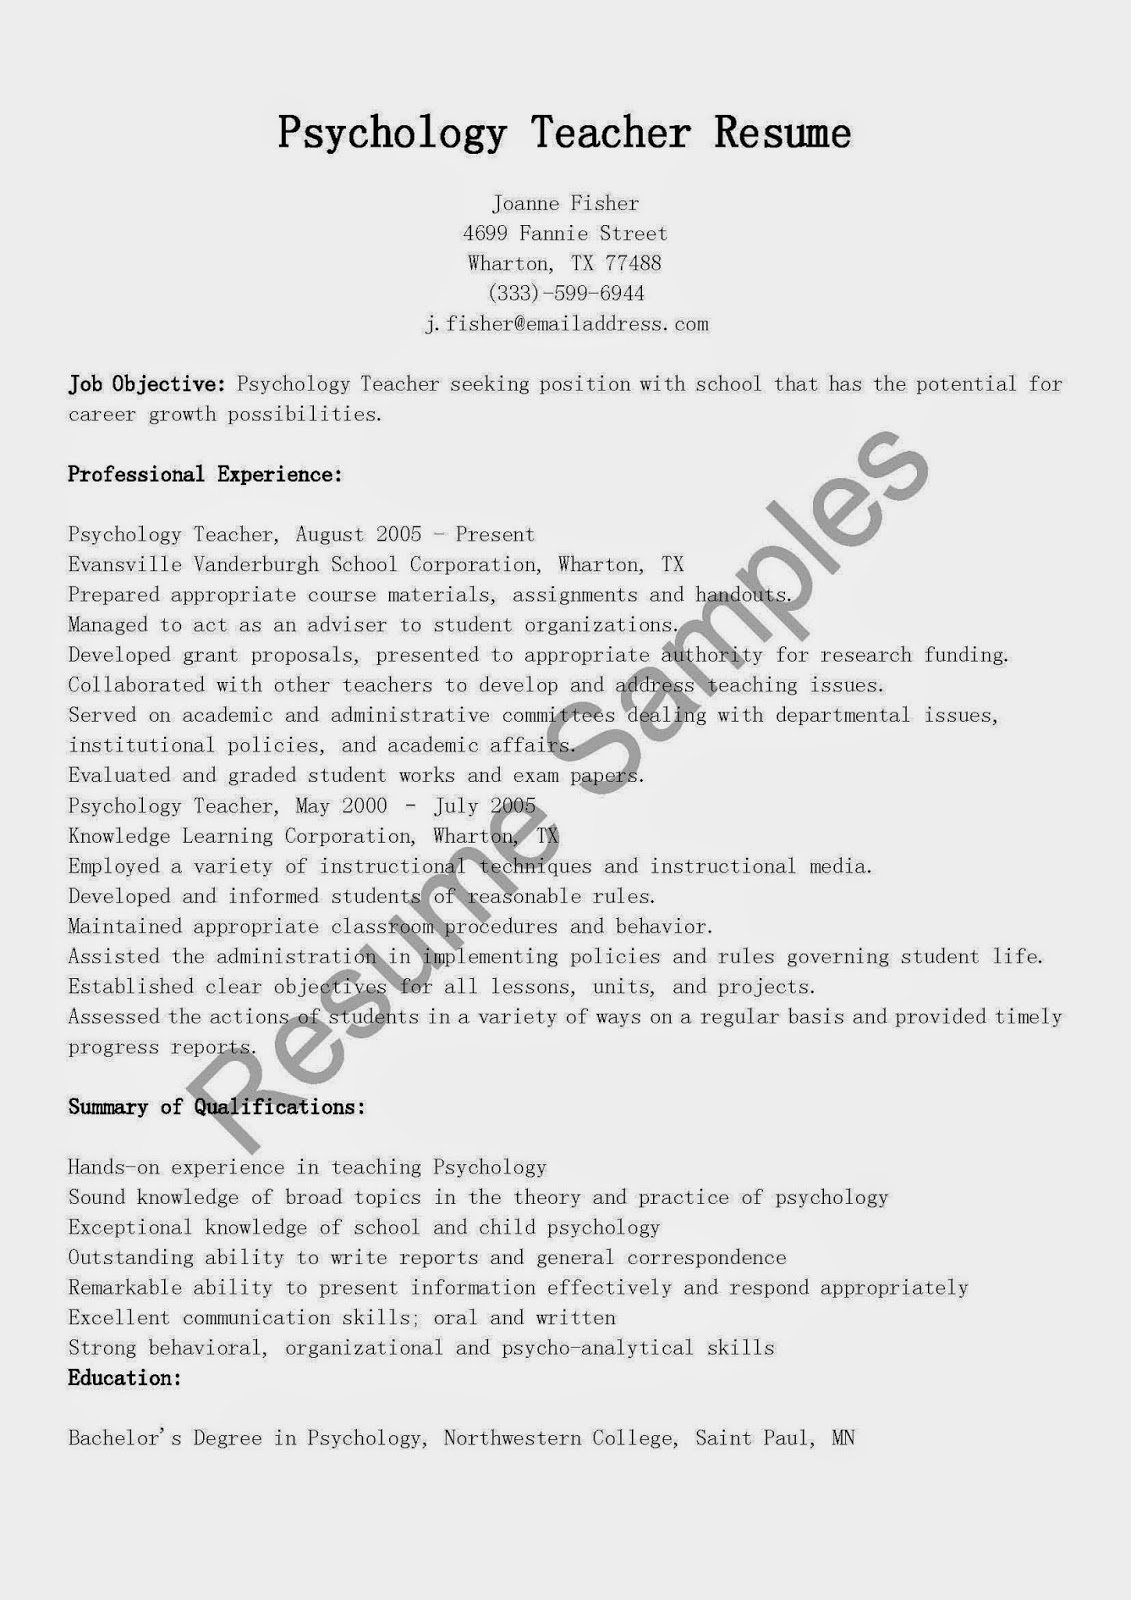 resume child psychologist basic academic resume sample sample resume samples psychology teacher resume sample